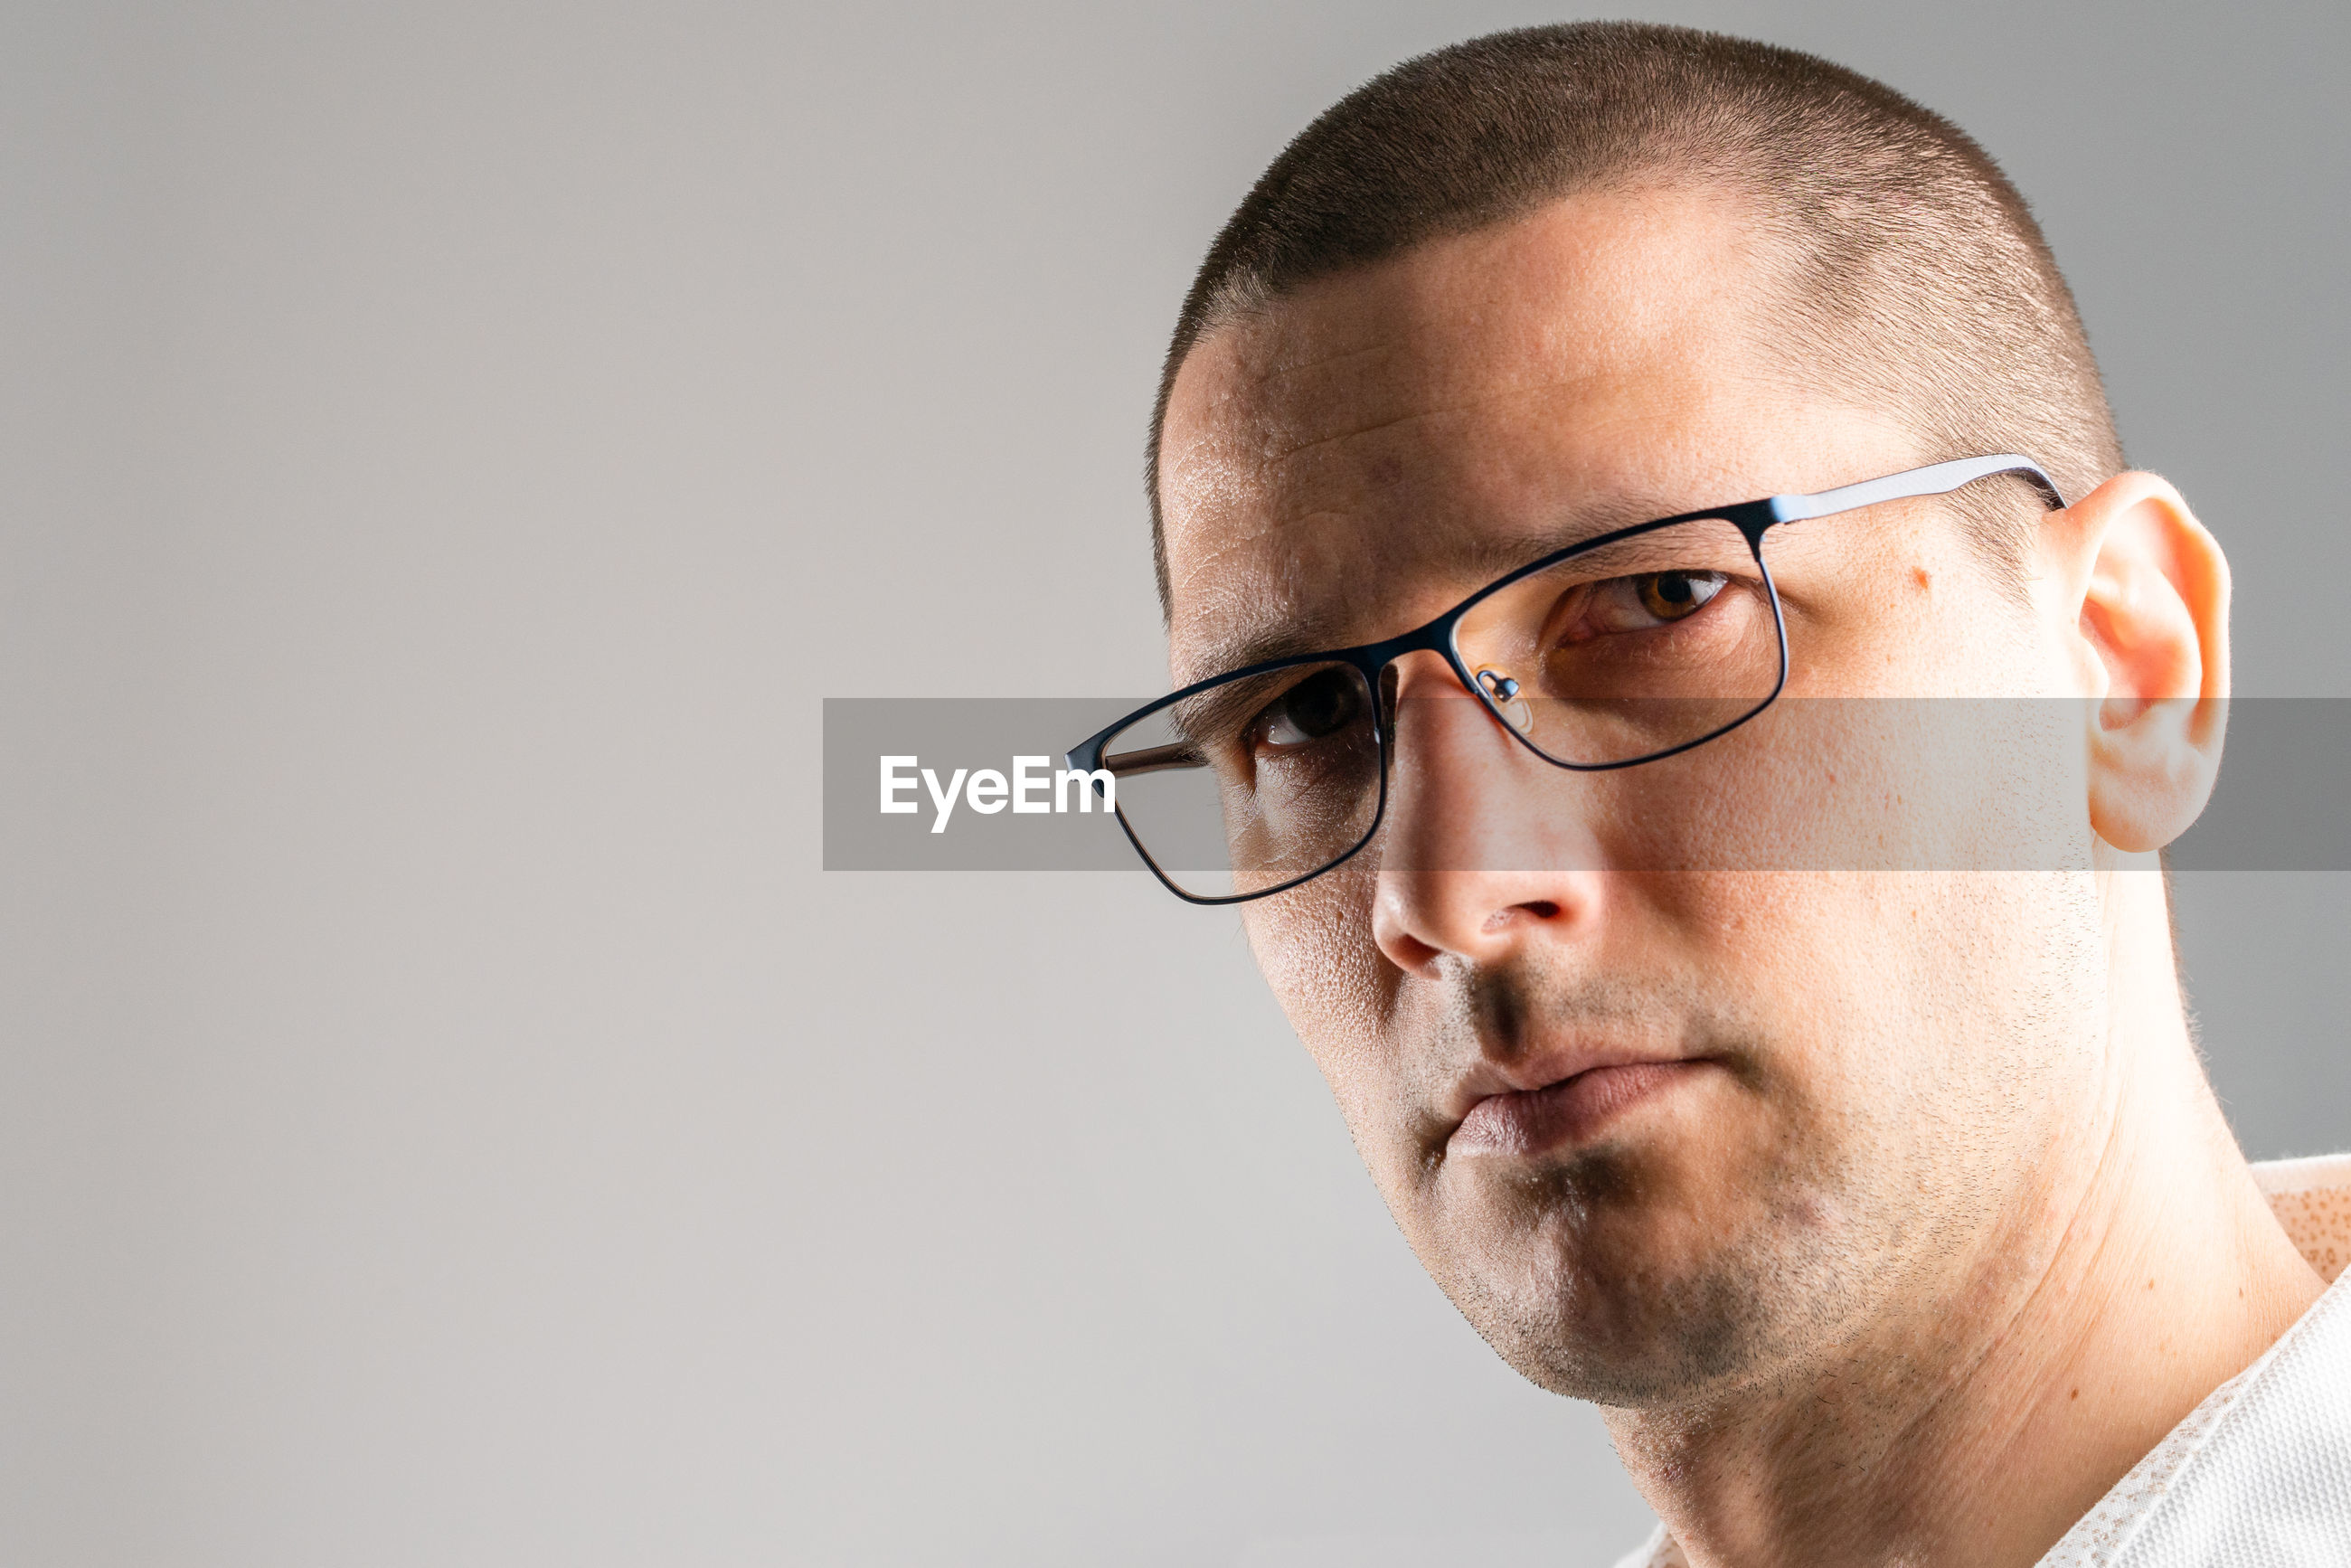 CLOSE-UP PORTRAIT OF MAN WEARING EYEGLASSES AGAINST GRAY BACKGROUND